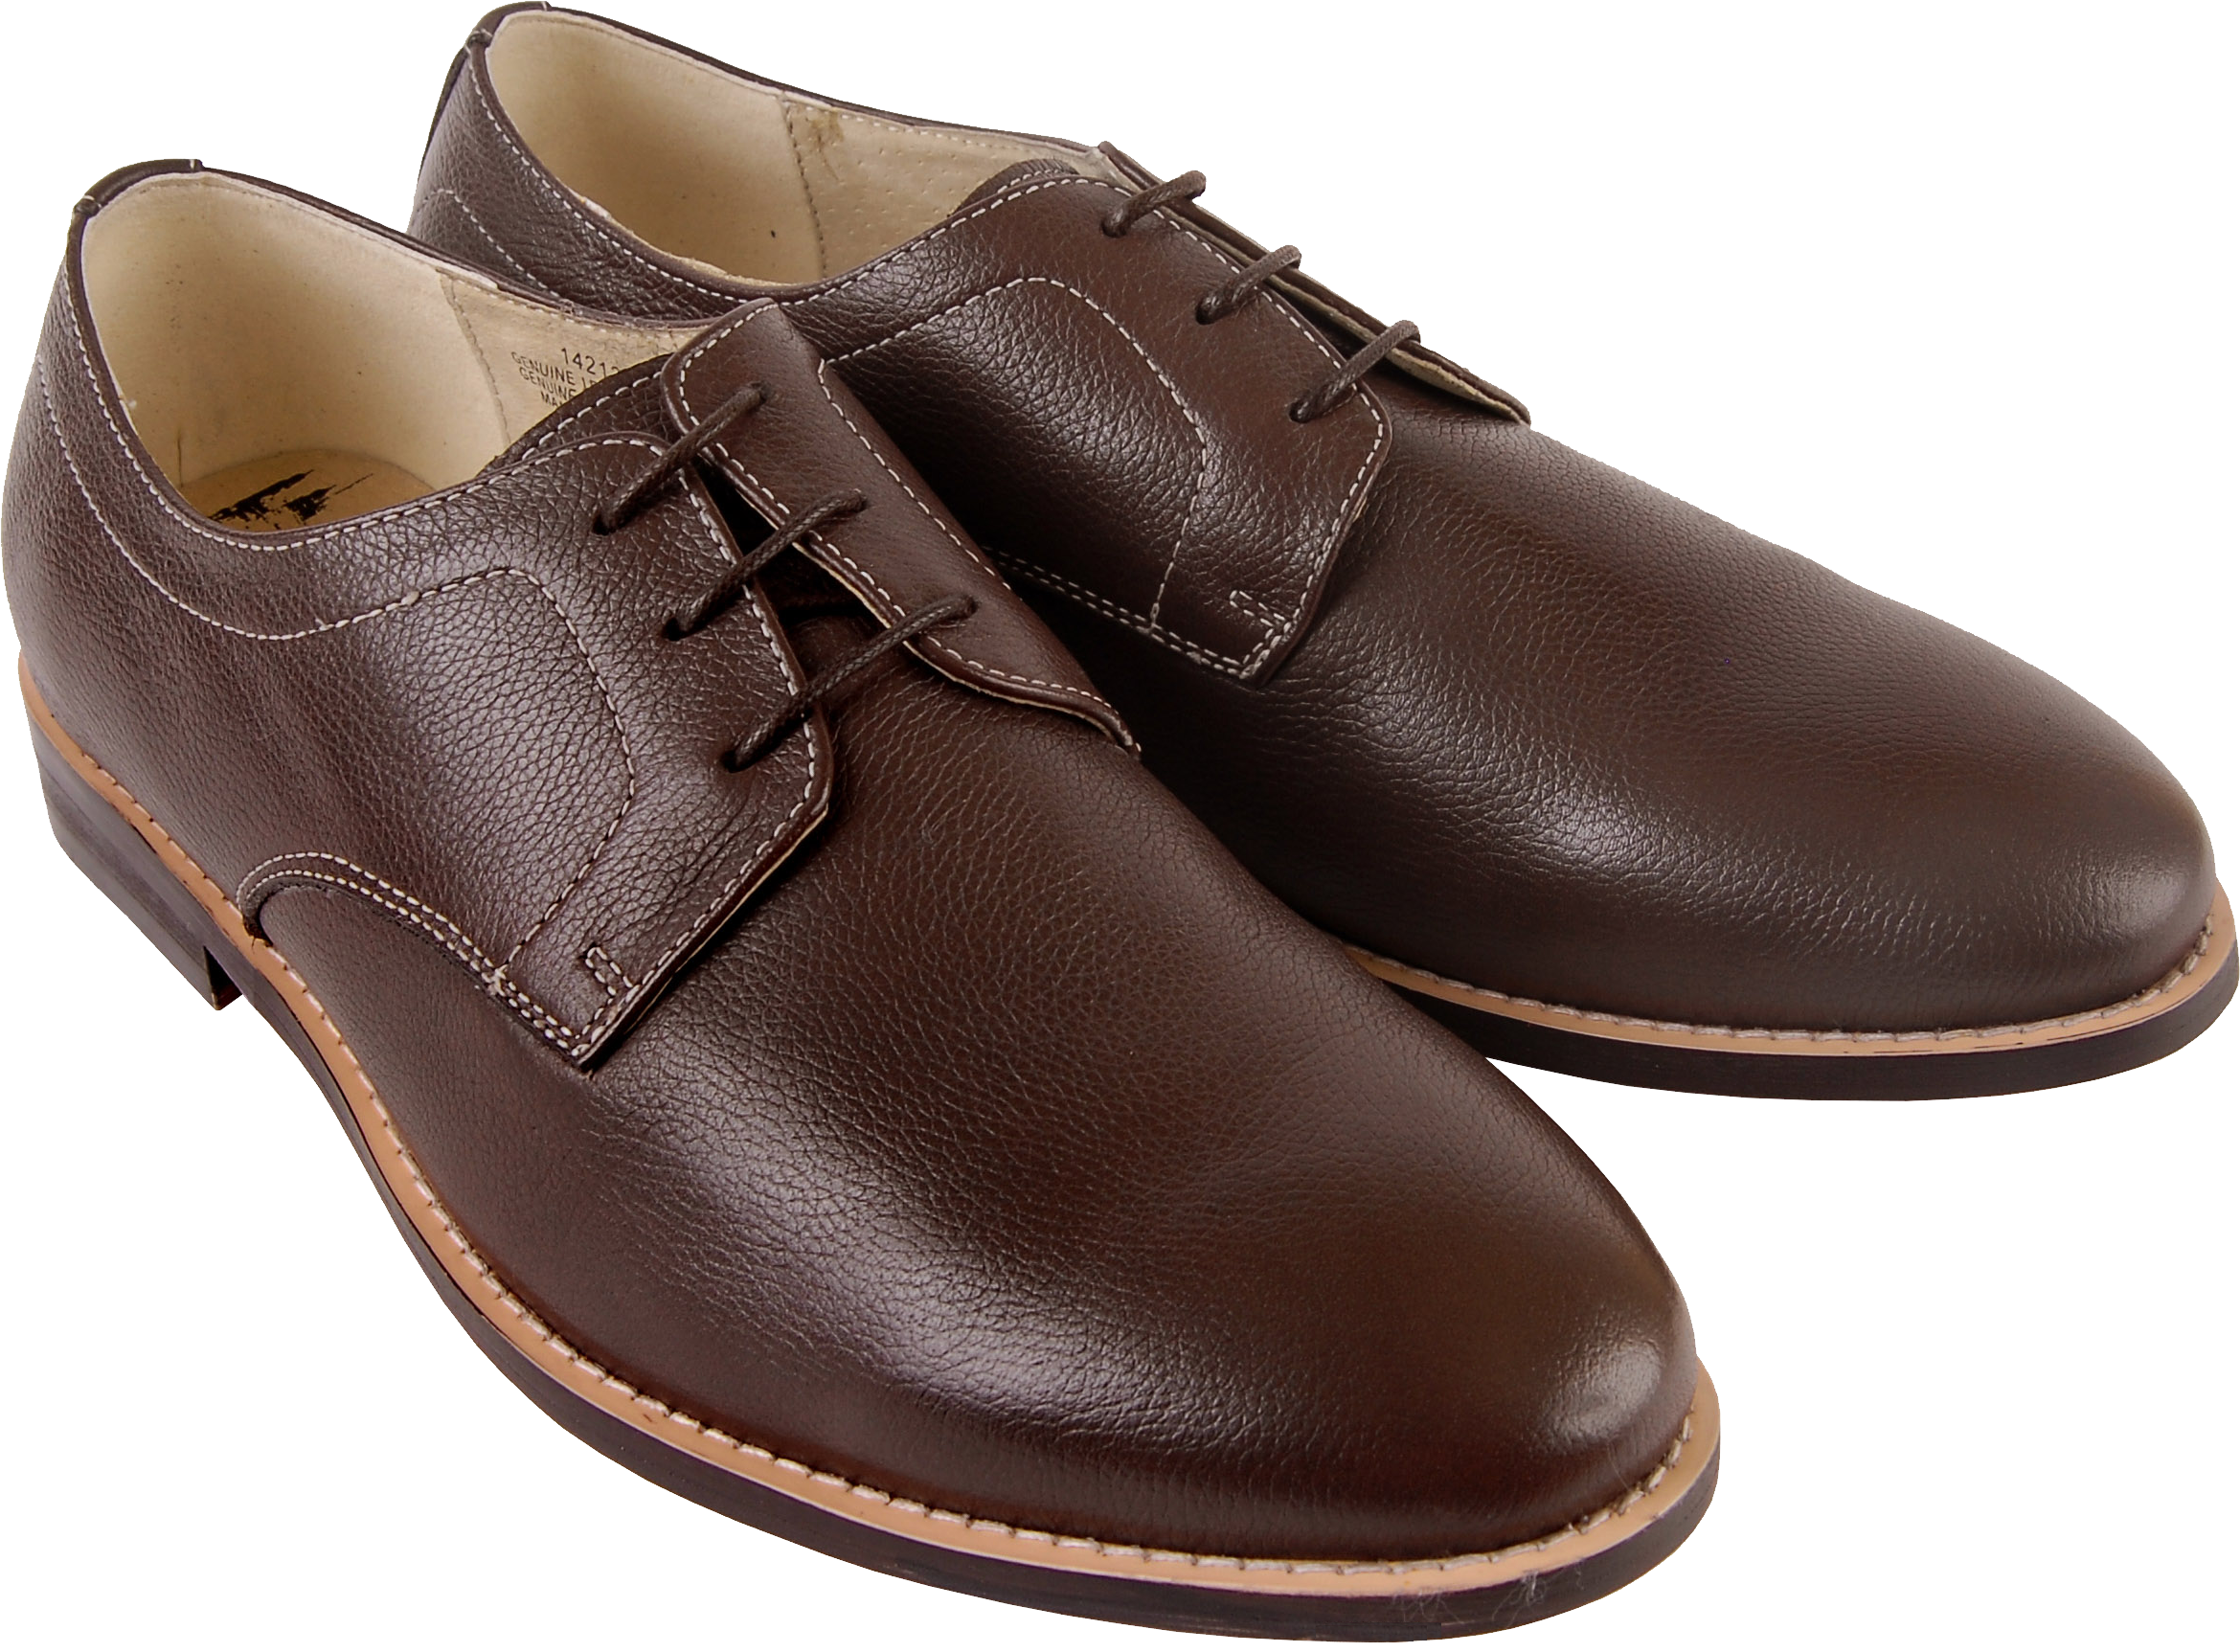 Shoes Png - Brown men shoes PNG image